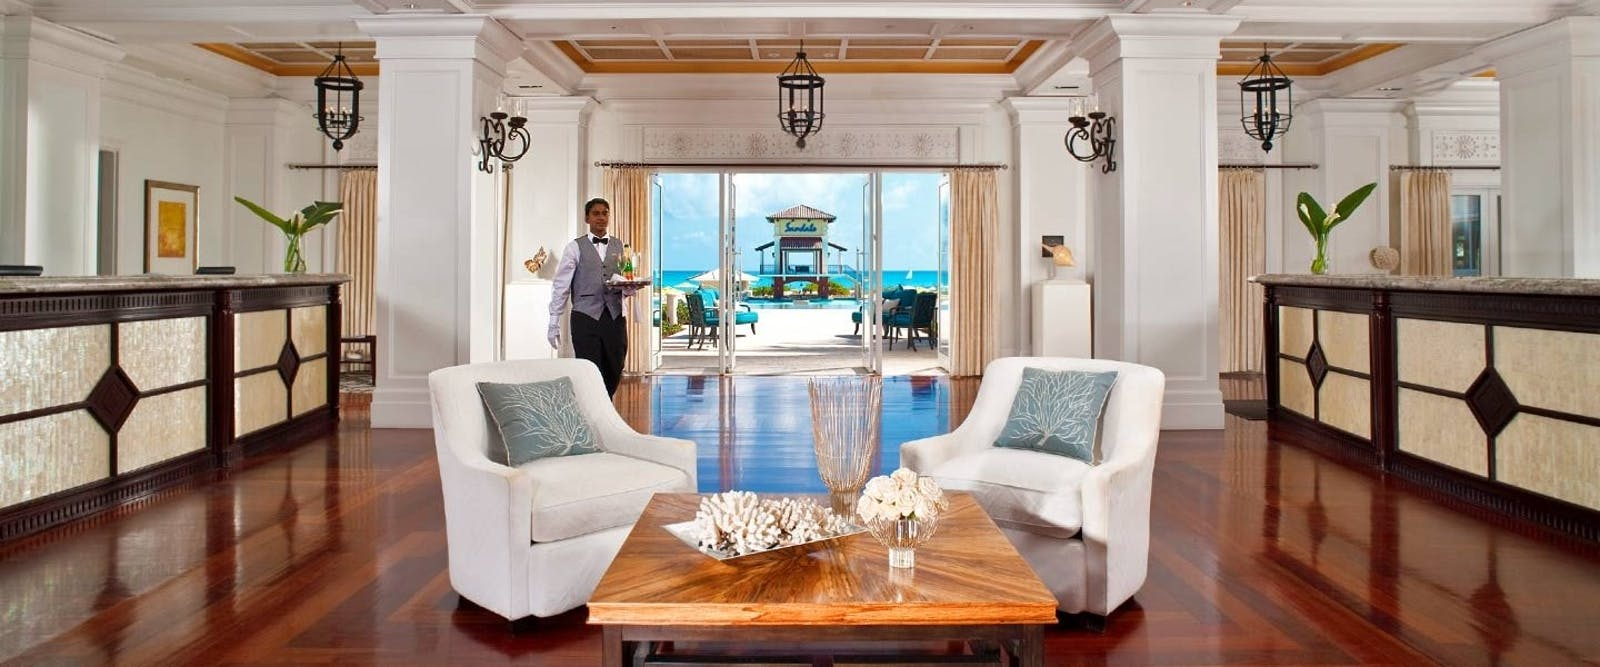 Lobby at Sandals Emerald Bay Golf, Tennis & Spa Resort, Bahamas, Caribbean